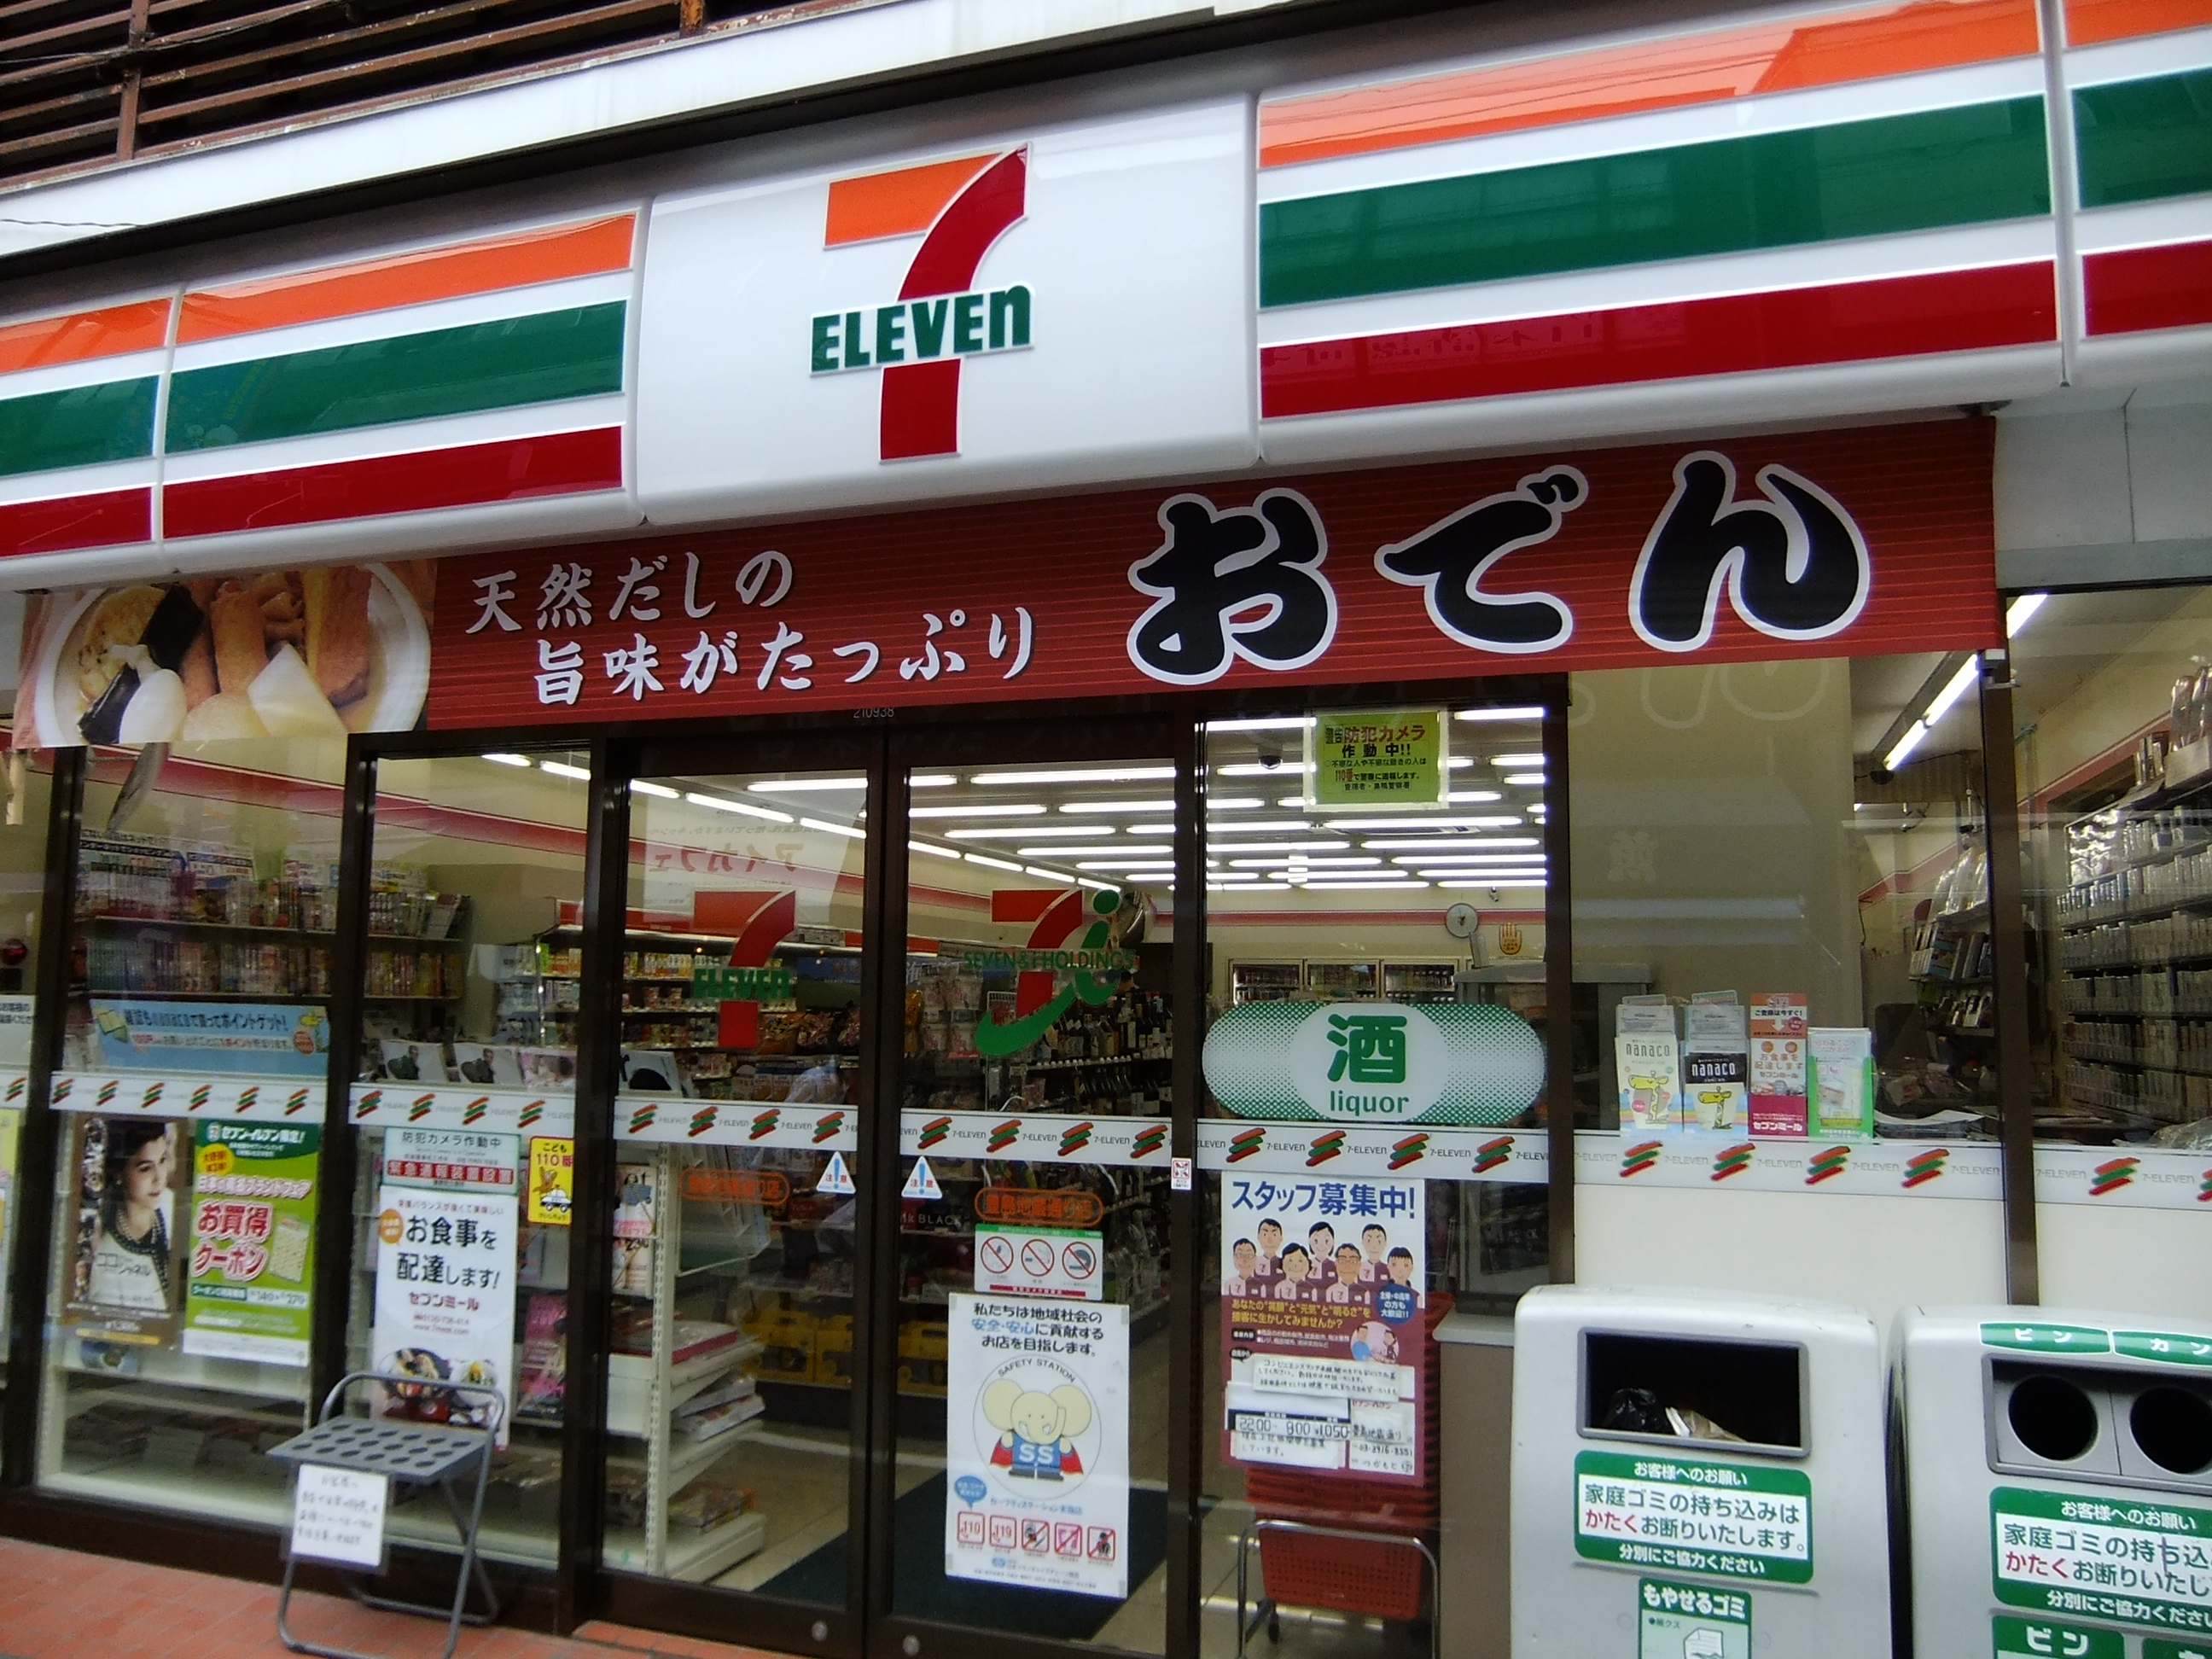 japan 7 eleven promotion Bangkok — thailand's biggest convenience store chain, 7-eleven, is to roll out   loyalty programme, allowing managers to single them out for promotions  7- eleven, which is owned by japan's seven & i holdings, is also.